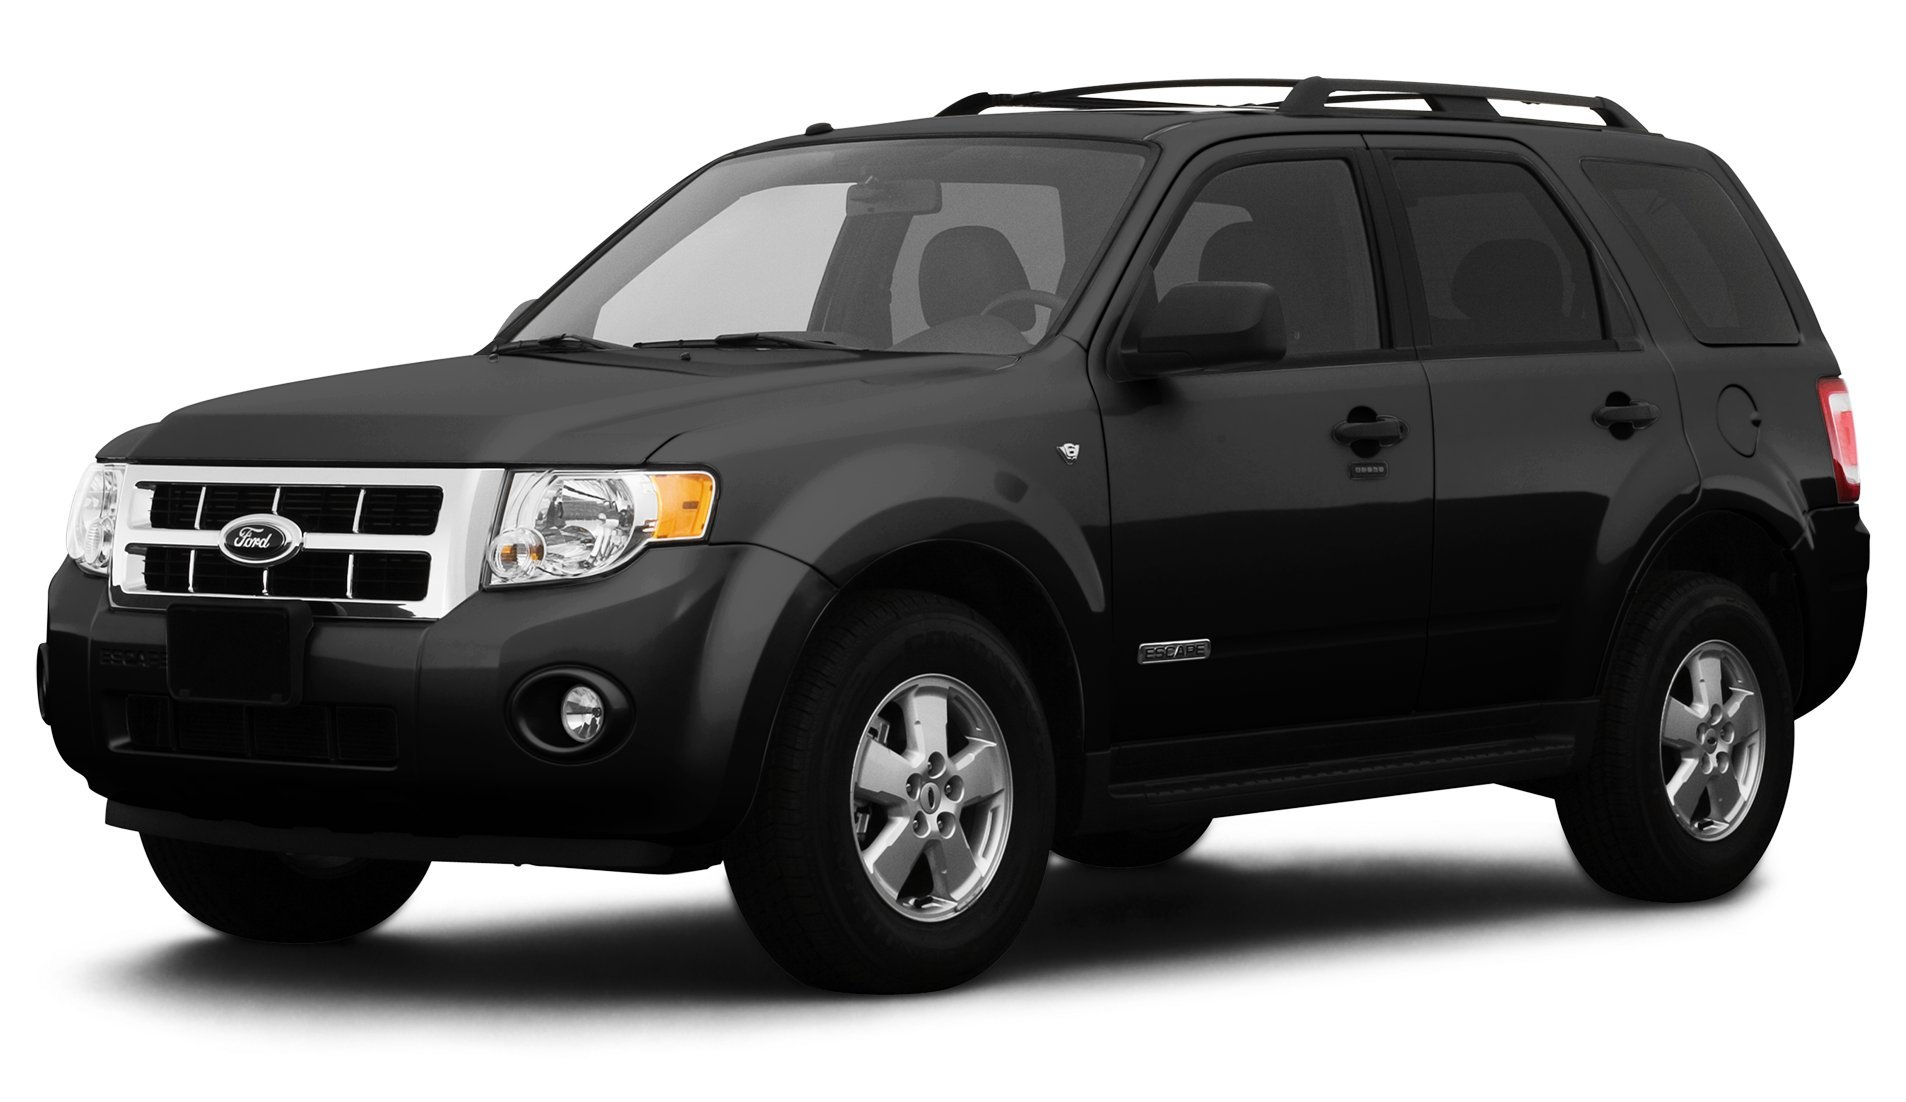 2008 mercury mariner reviews images and specs vehicles. Black Bedroom Furniture Sets. Home Design Ideas